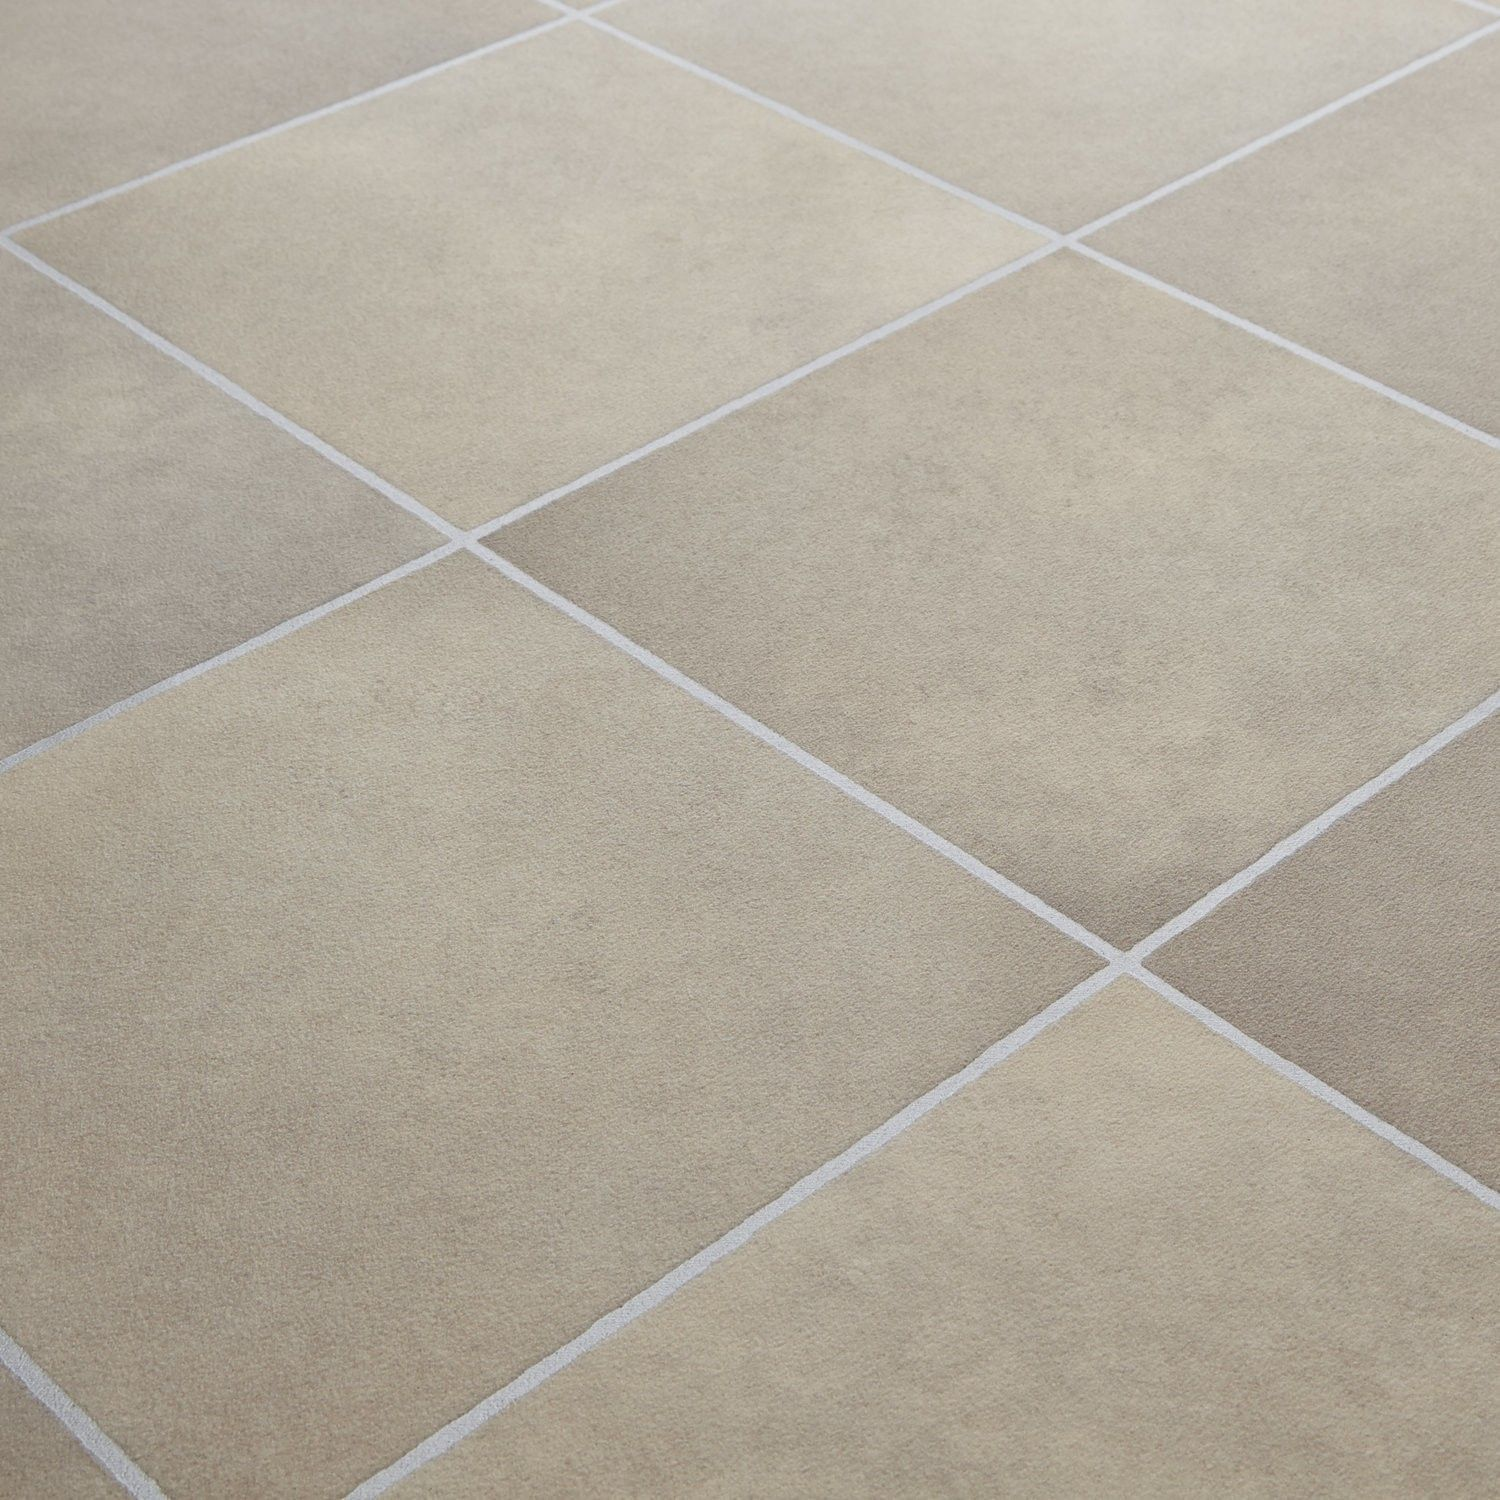 Mardi gras 535 durango stone tile effect vinyl for Tile linoleum bathroom